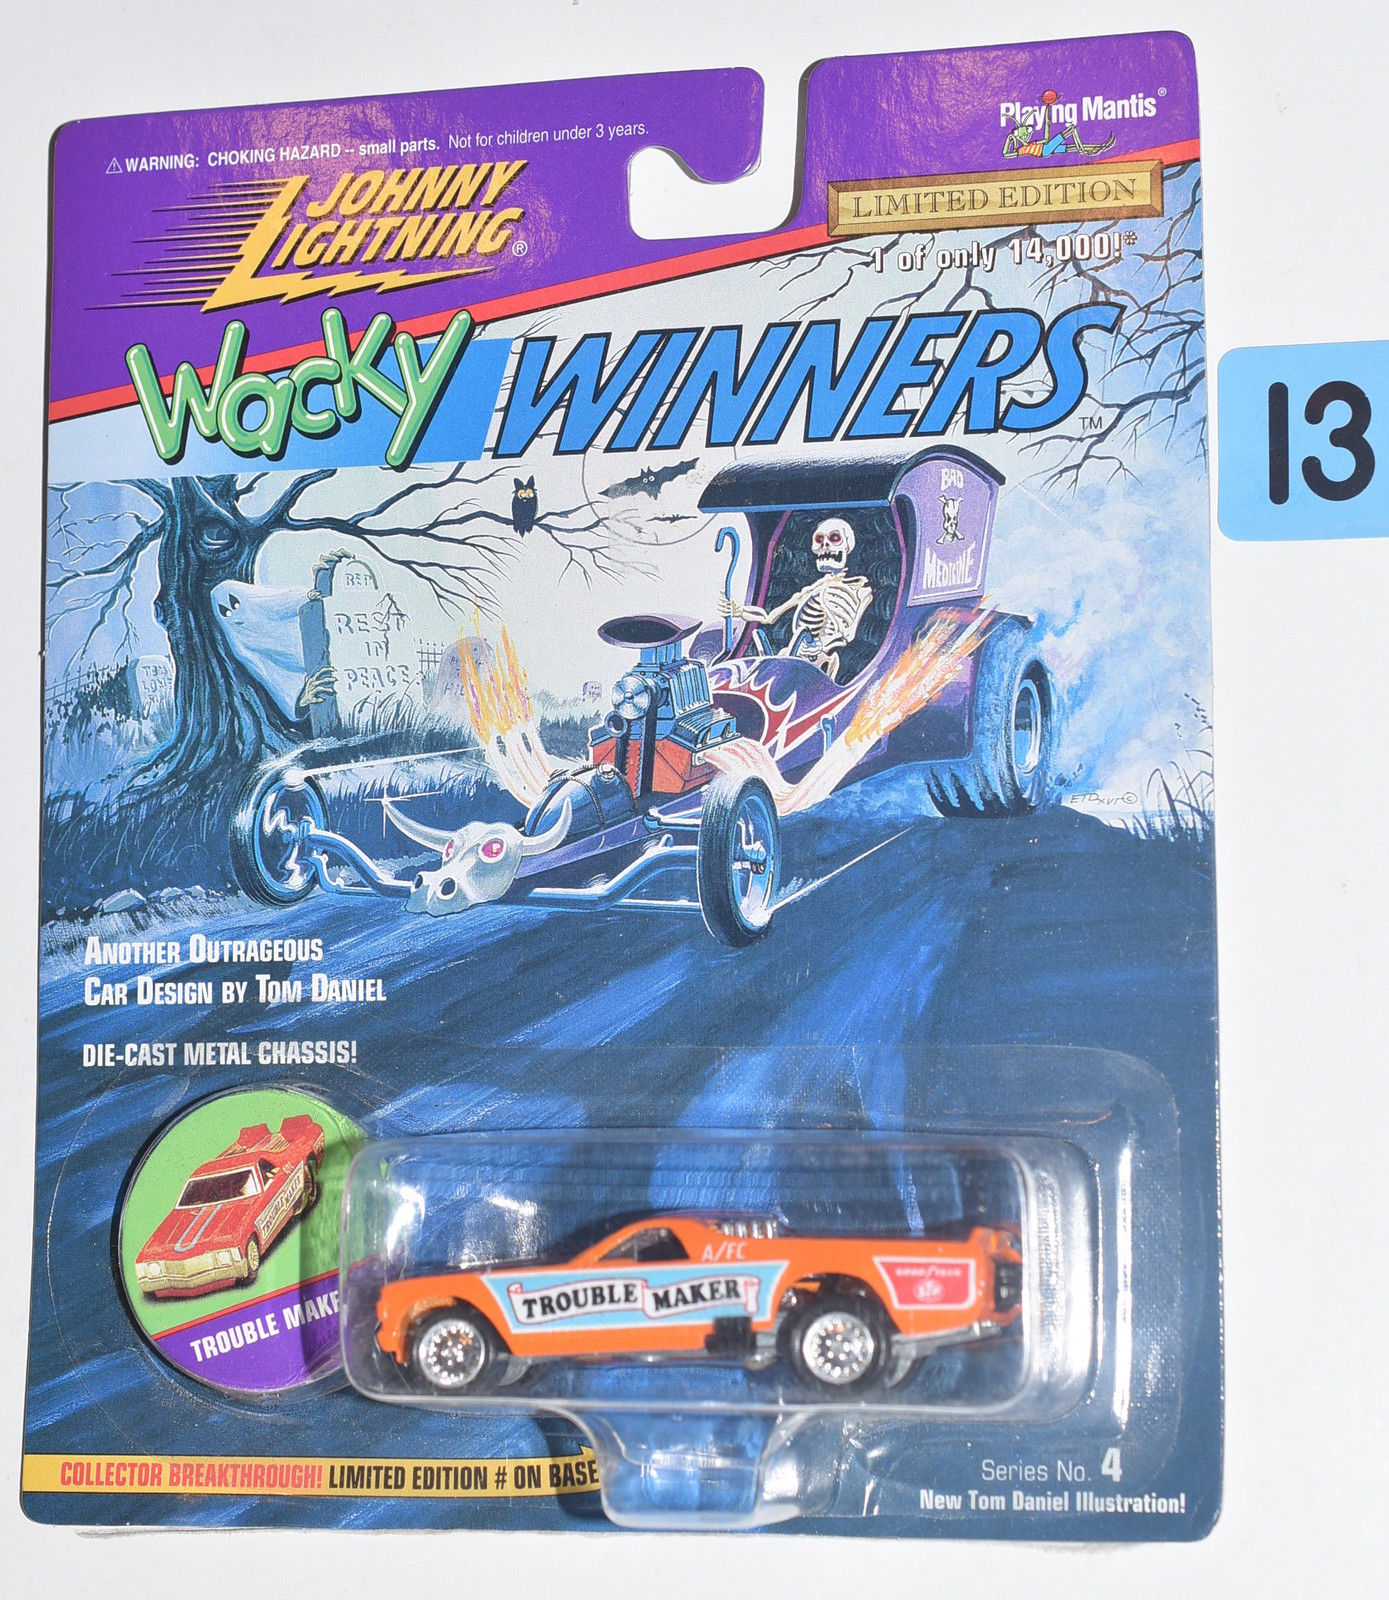 JOHNNY LIGHTNING WACKY WINNERS SERIES 4 TROUBLE MAKER ORANGE